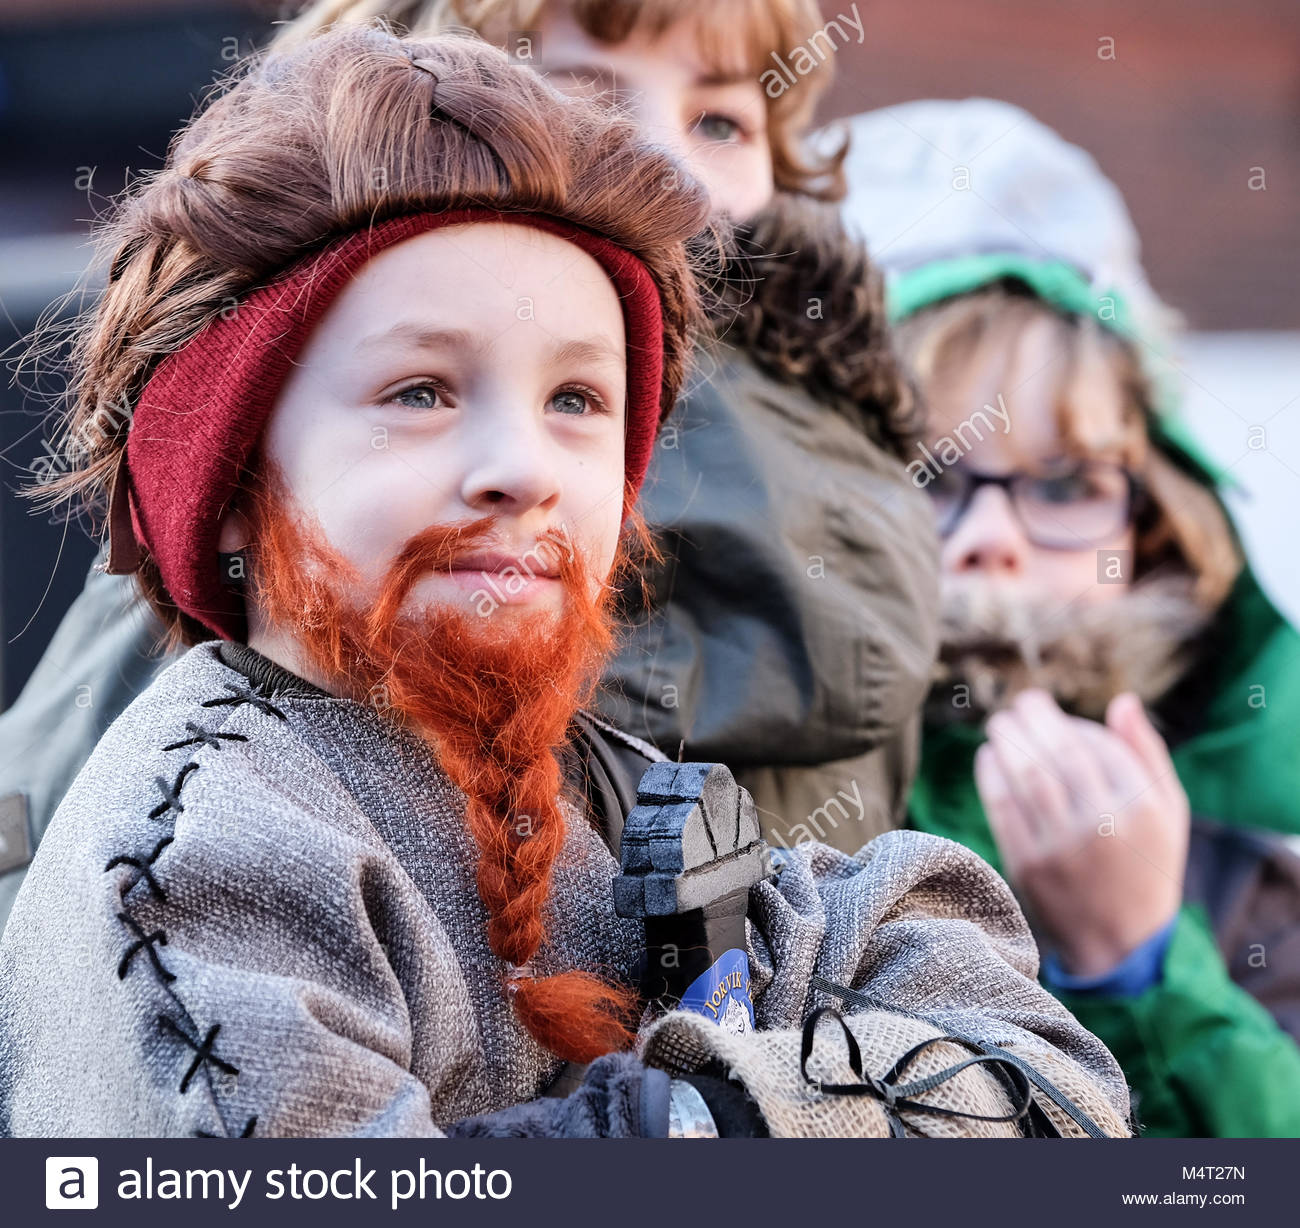 A competitor in the best beard competition at Yorvik Viking Festival. Credit: Alternative Occasions/Alamy Live News - Stock Image